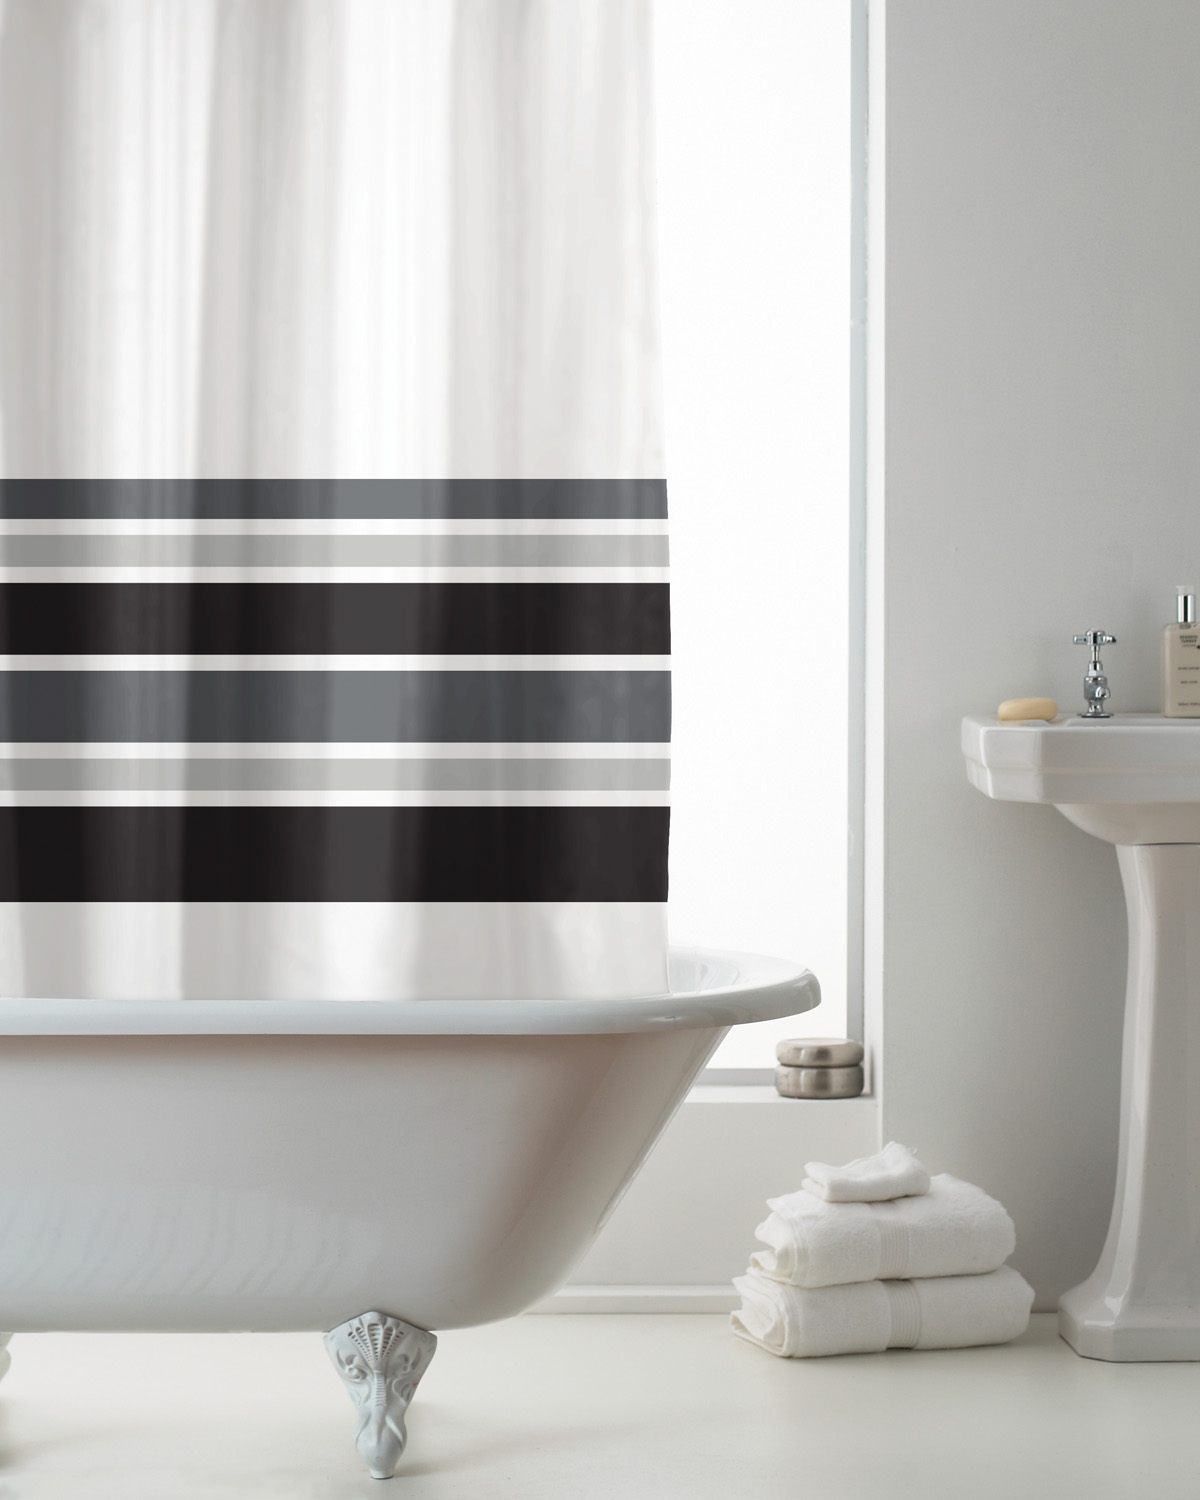 Details About Country Club Hookless Shower Curtain Black Stripe Bathroom Accessories Decor